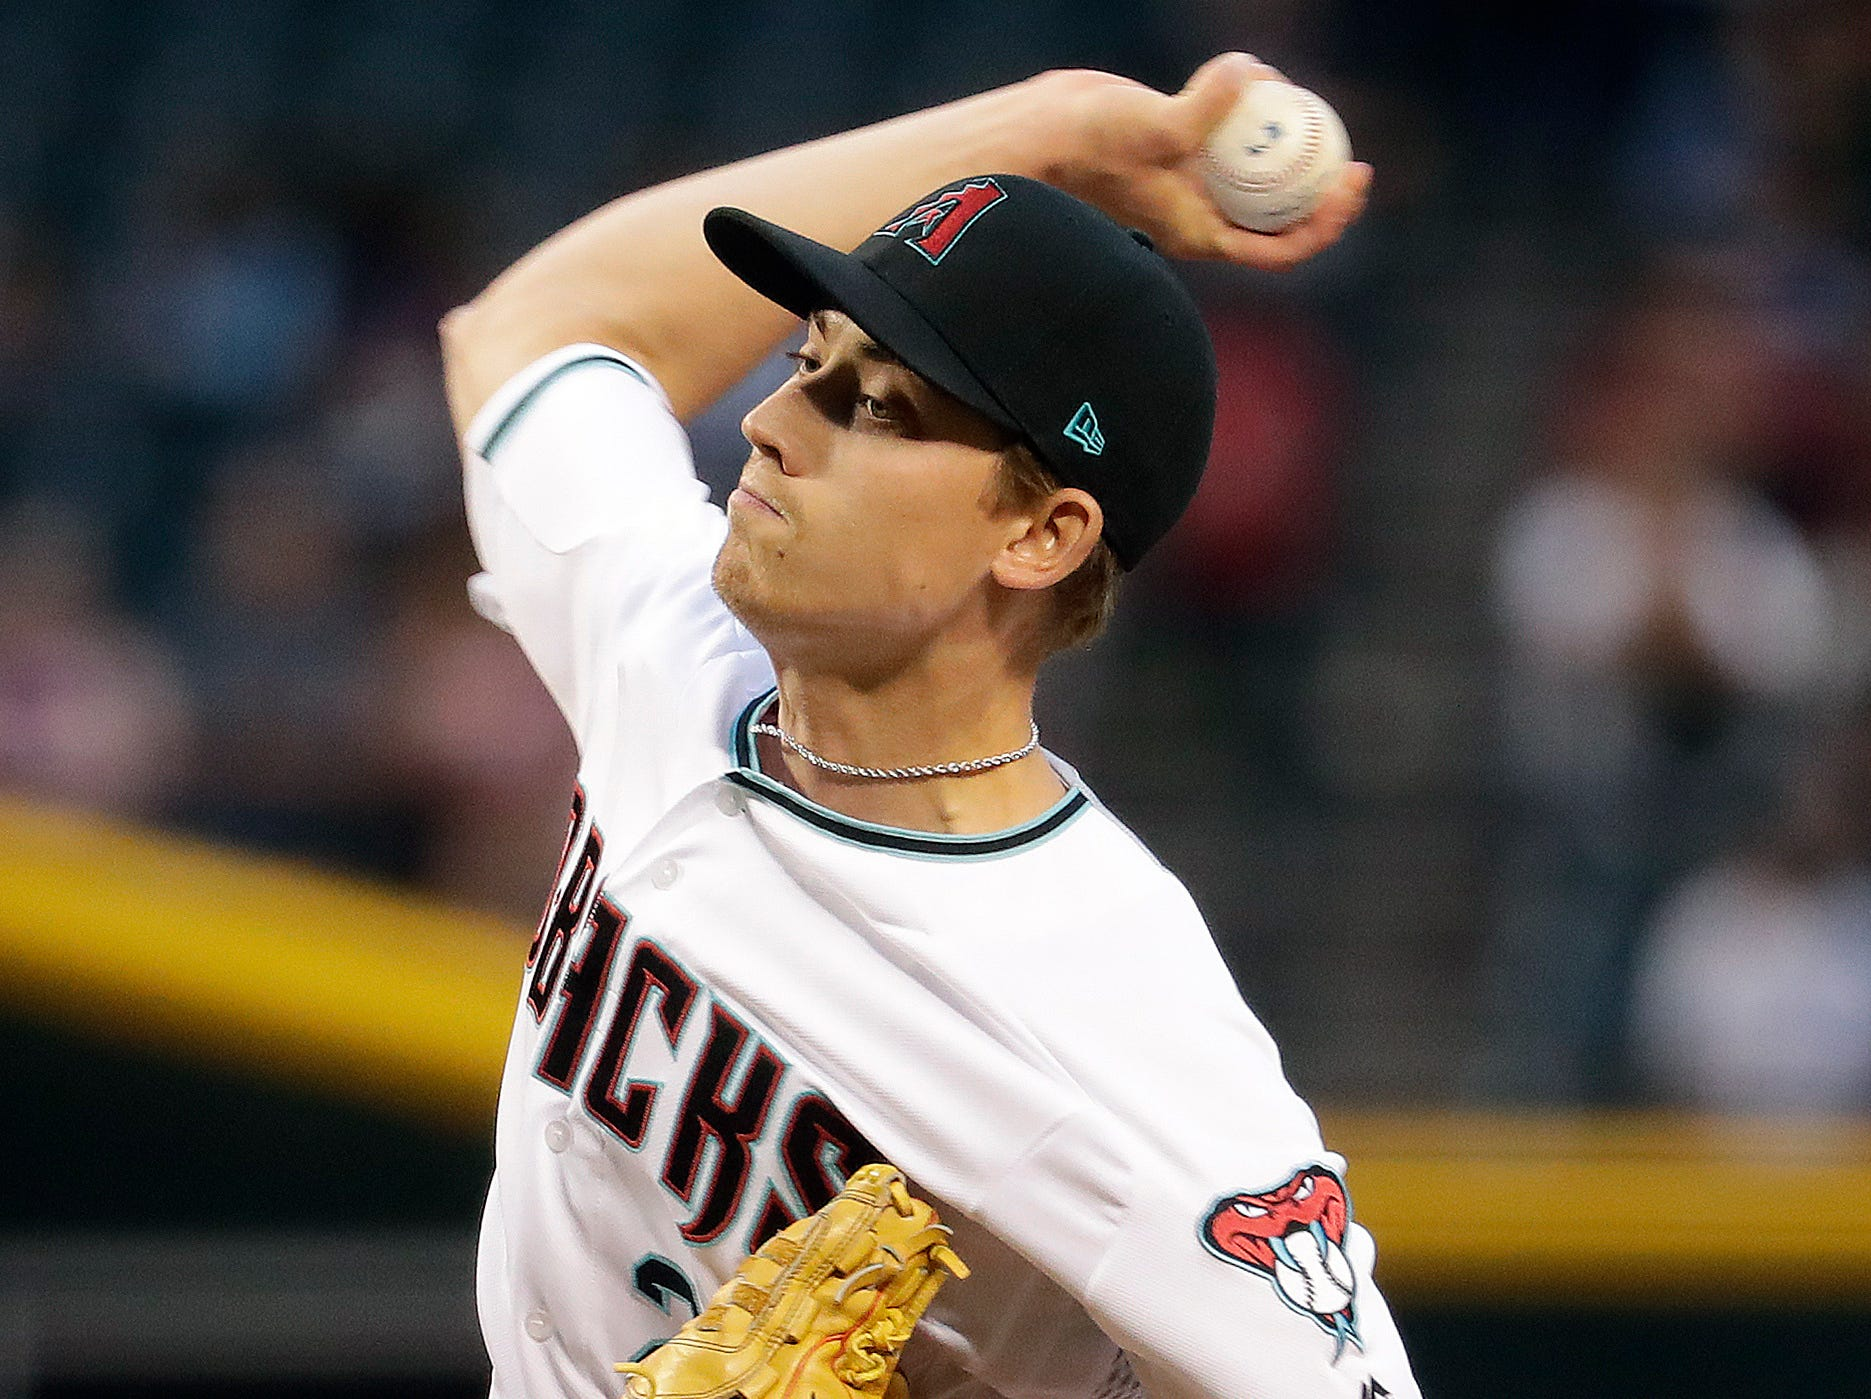 Arizona Diamondbacks starting pitcher Luke Weaver throws to a San Diego Padres batter during the first inning of a baseball game Friday, April 12, 2019, in Phoenix. (AP Photo/Matt York)